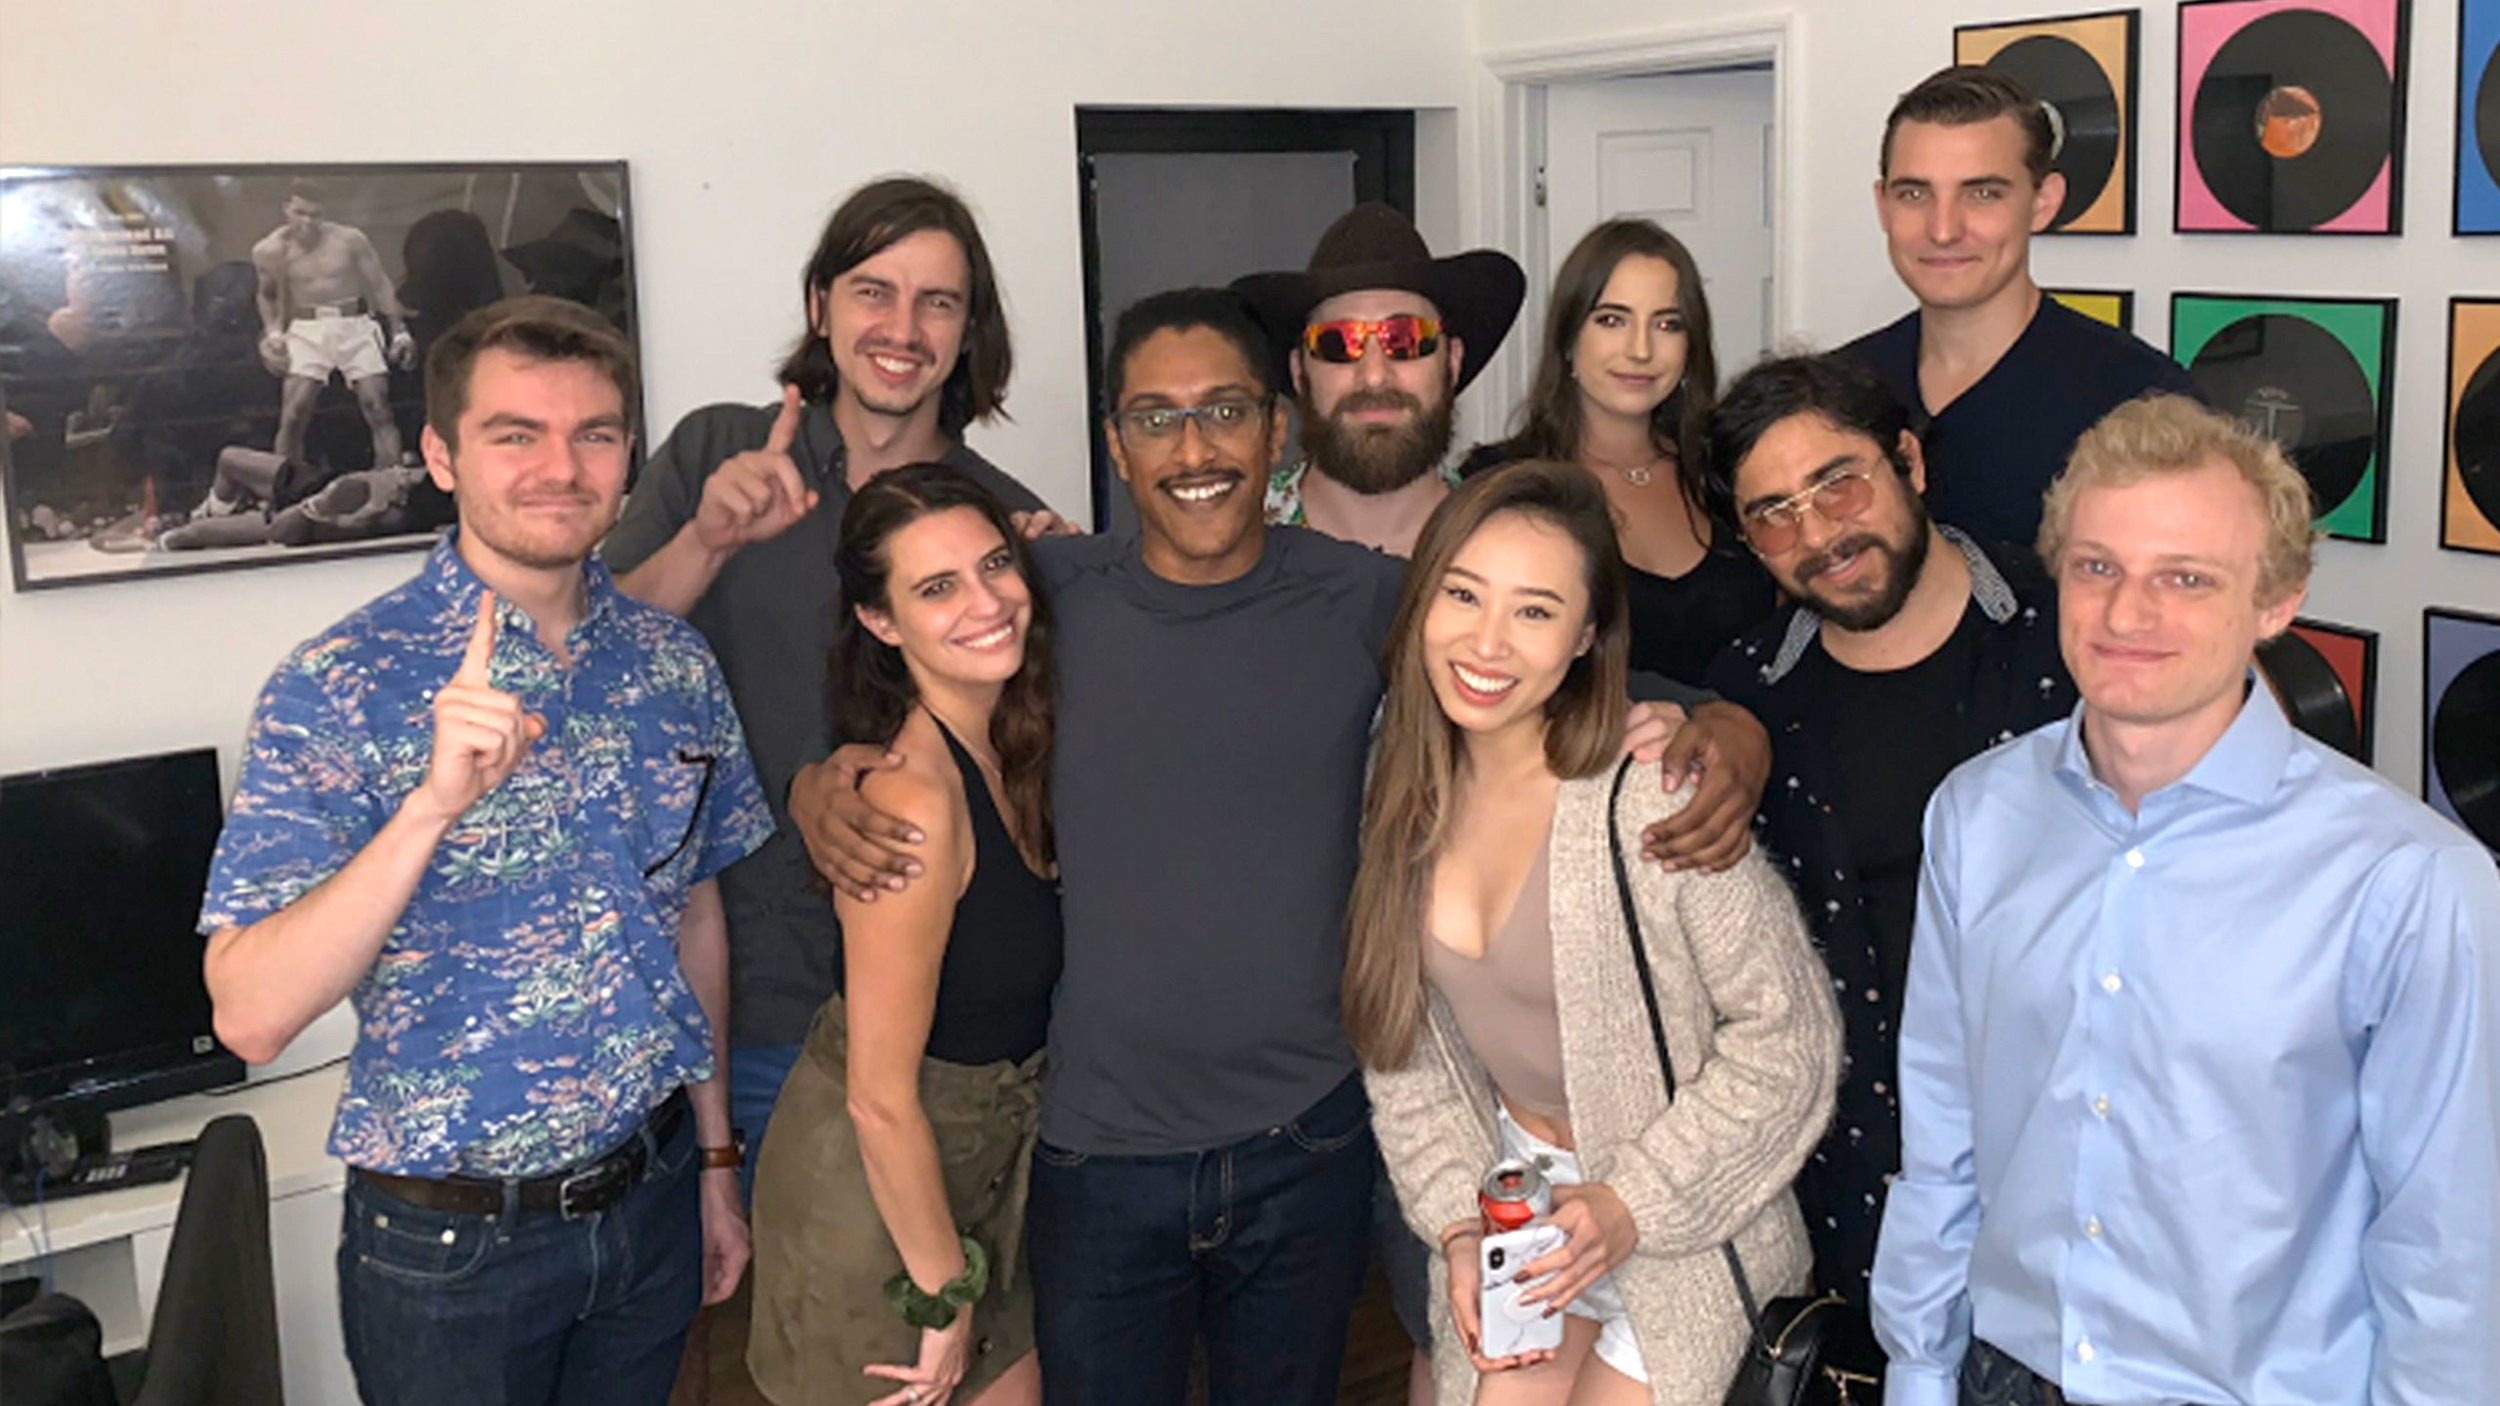 """Group pic that's """"controversial"""" because one guy in the pic is supposedly """"racist,"""" and another an """"anti-Semite"""" who's said nasty things about Jews and others. One woman in this pic was fired from a high profile conservative group over this."""